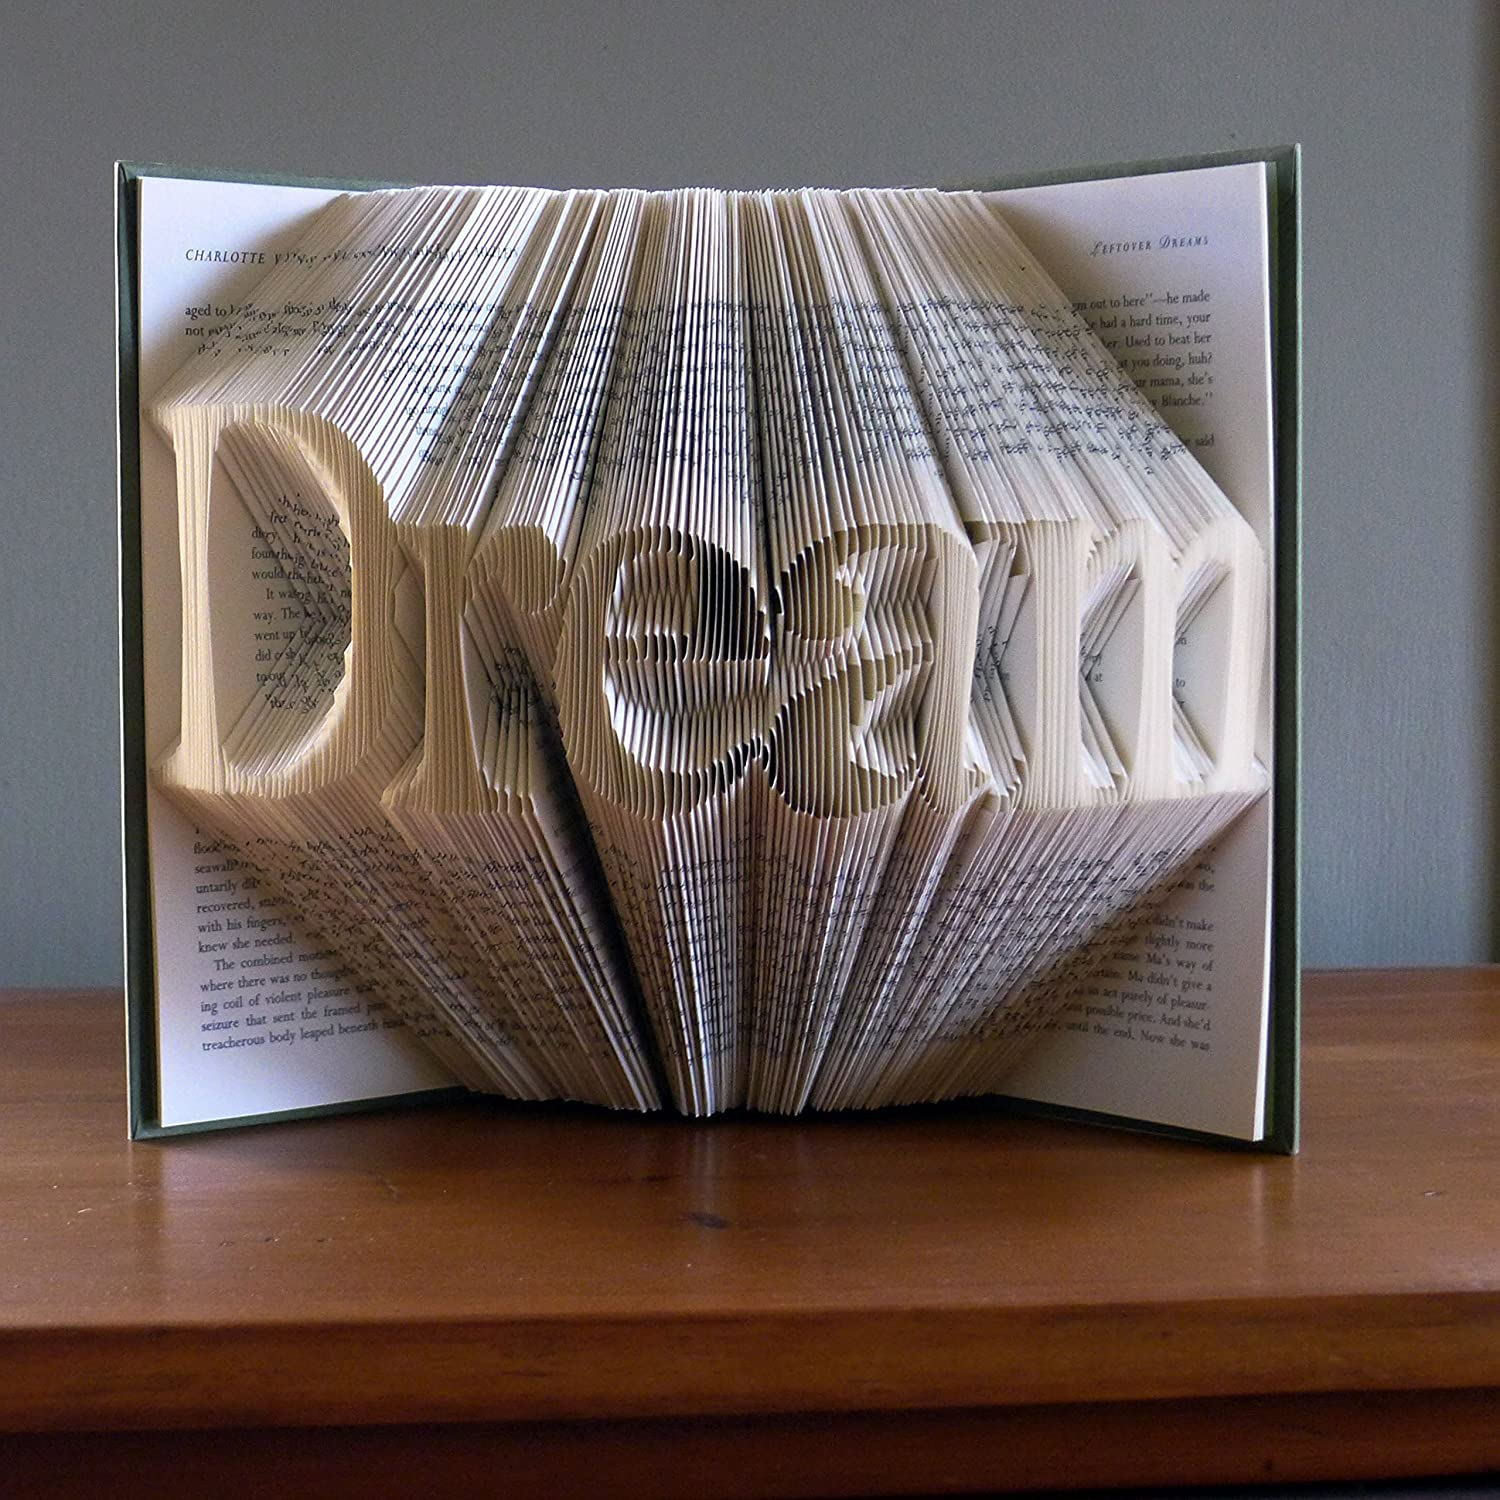 Unique Present for Book Lovers Your Name Here Best Selling Item Graduation Gift Personalized Book Art This Folded Book Can Be Personalized With Your Choice of Word